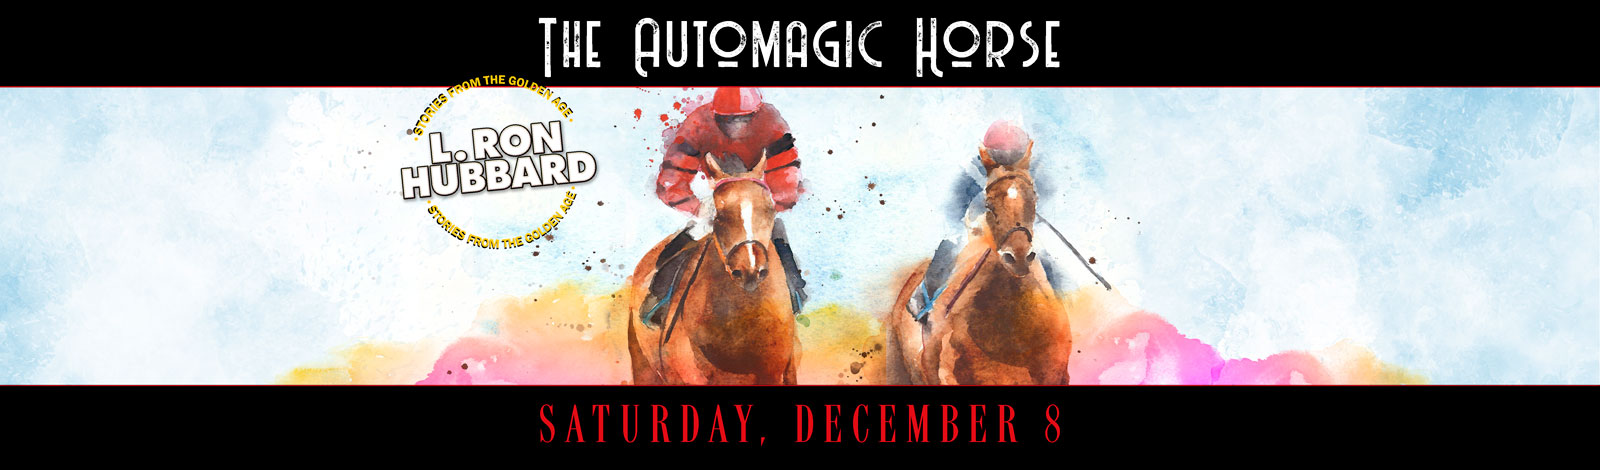 The Automagic Horse - December 8, 2018